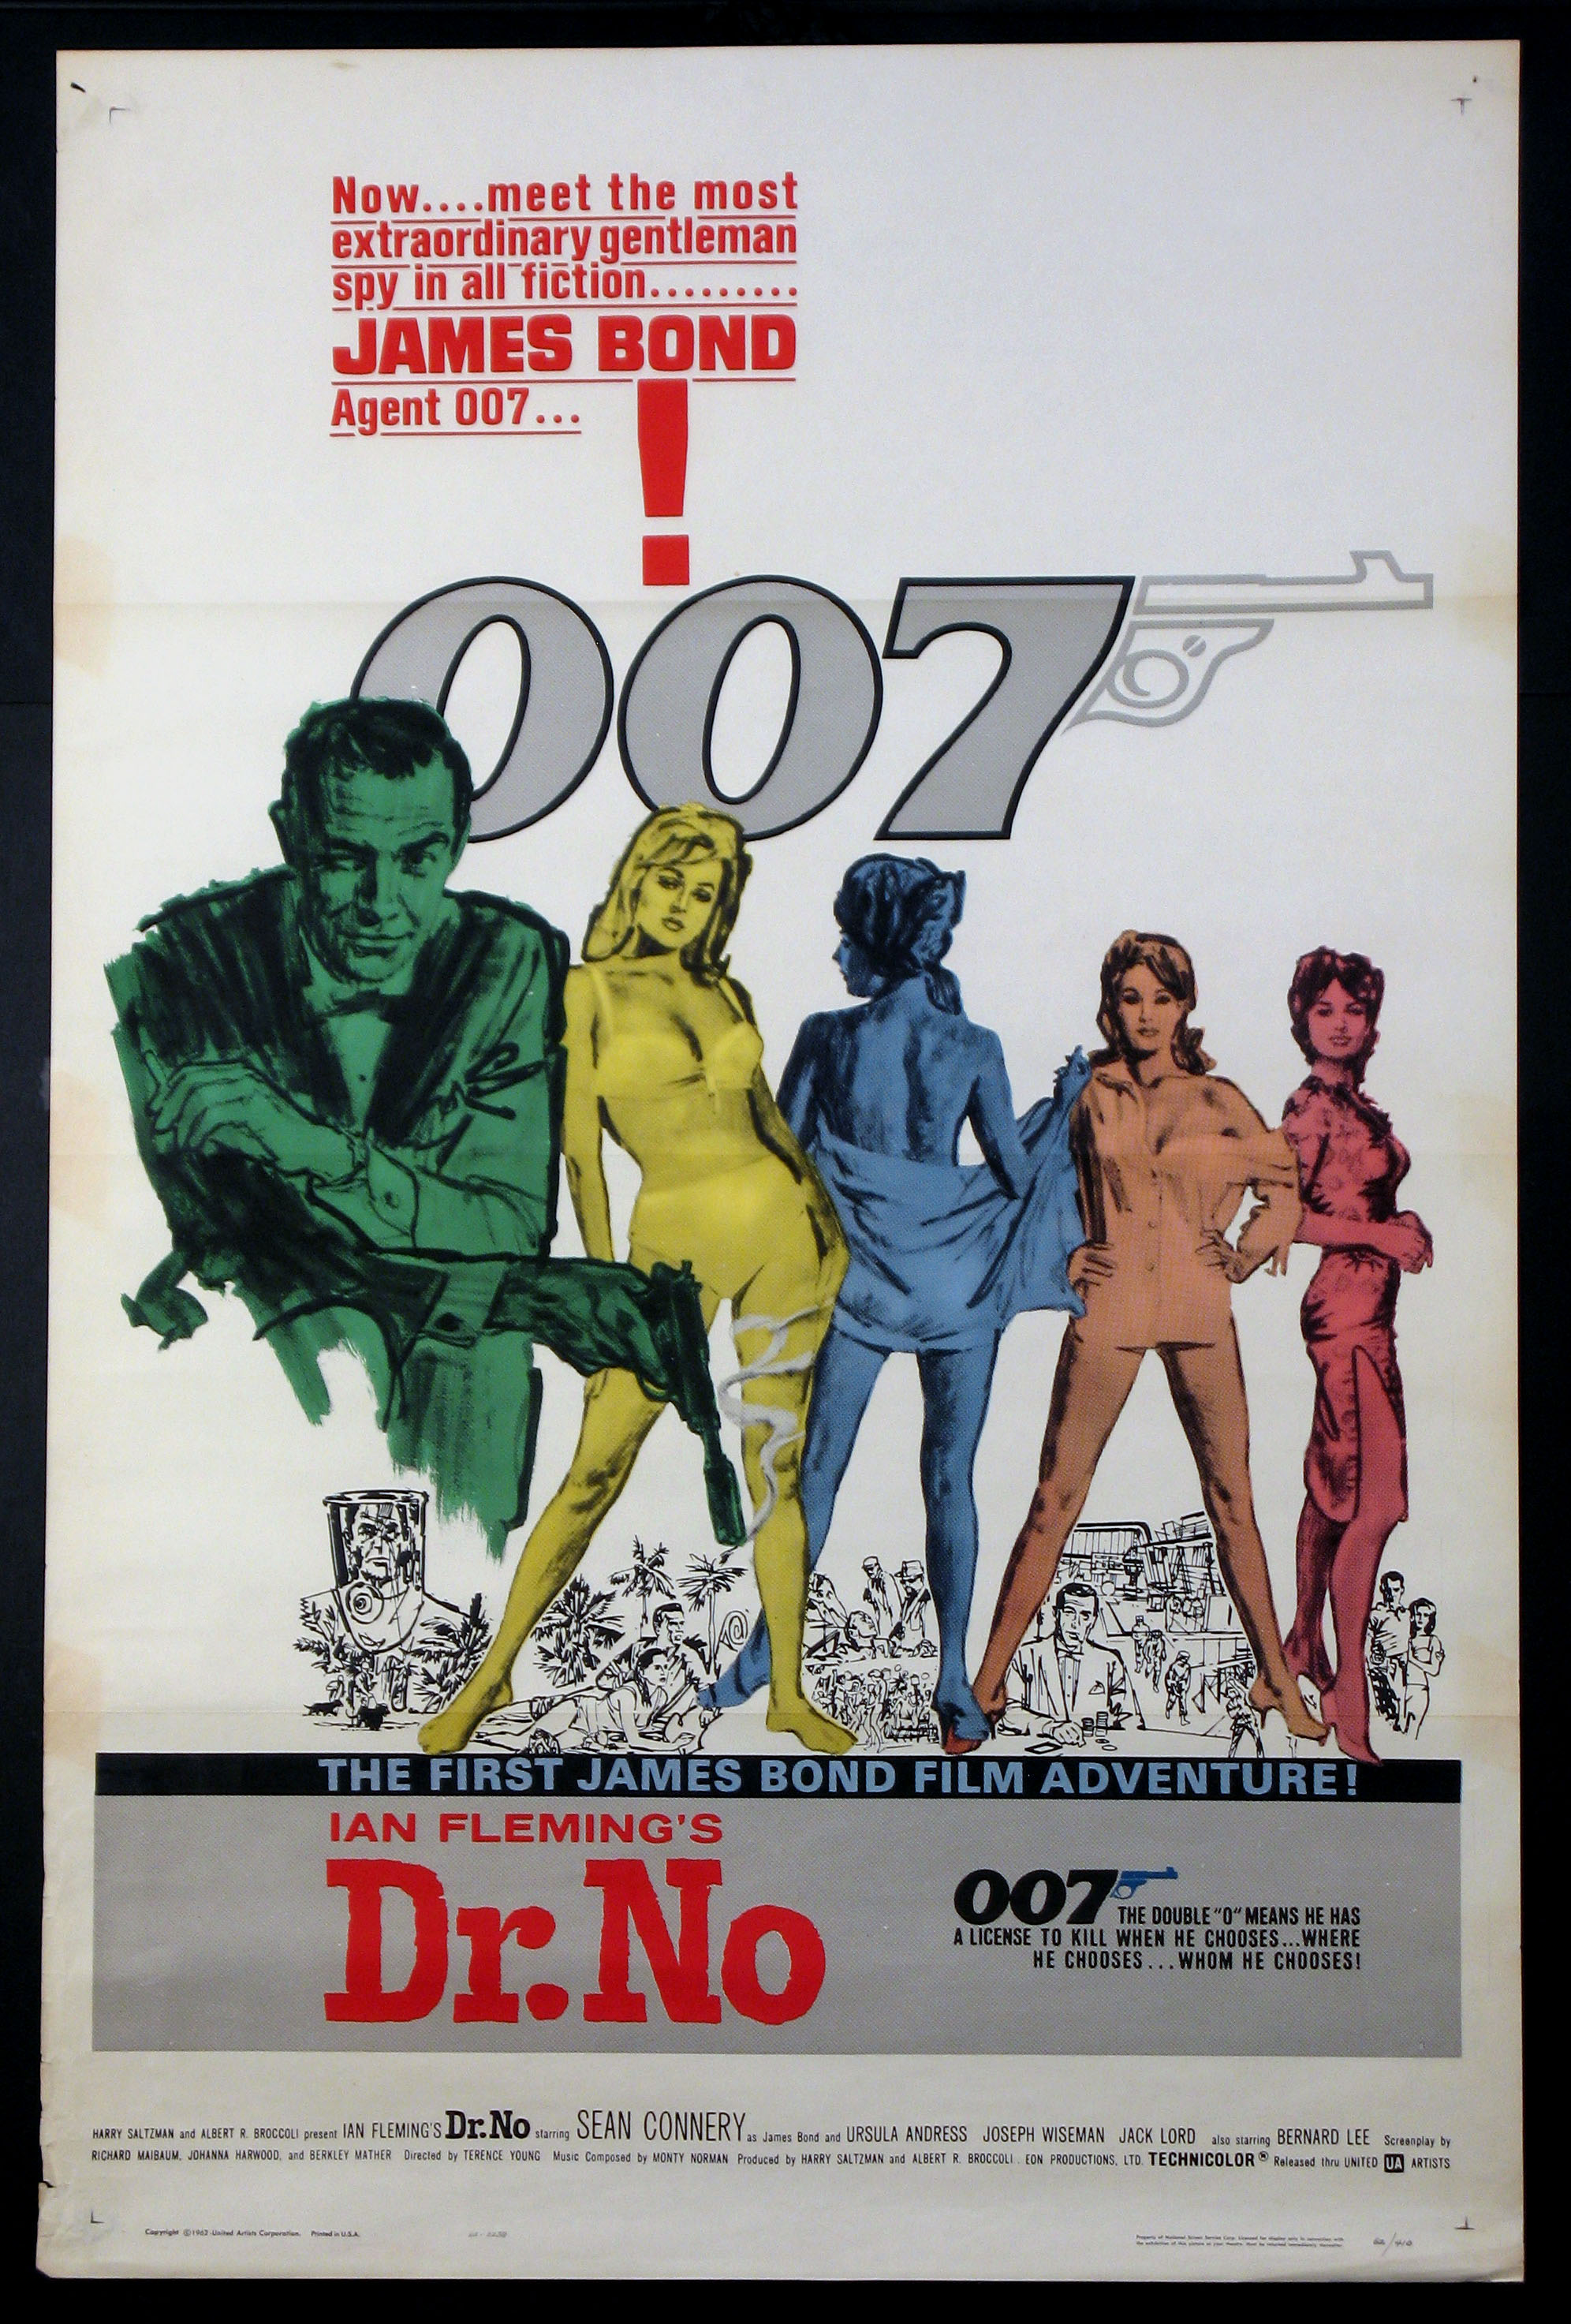 DOCTOR NO (DR. NO) (James Bond) @ FilmPosters.com